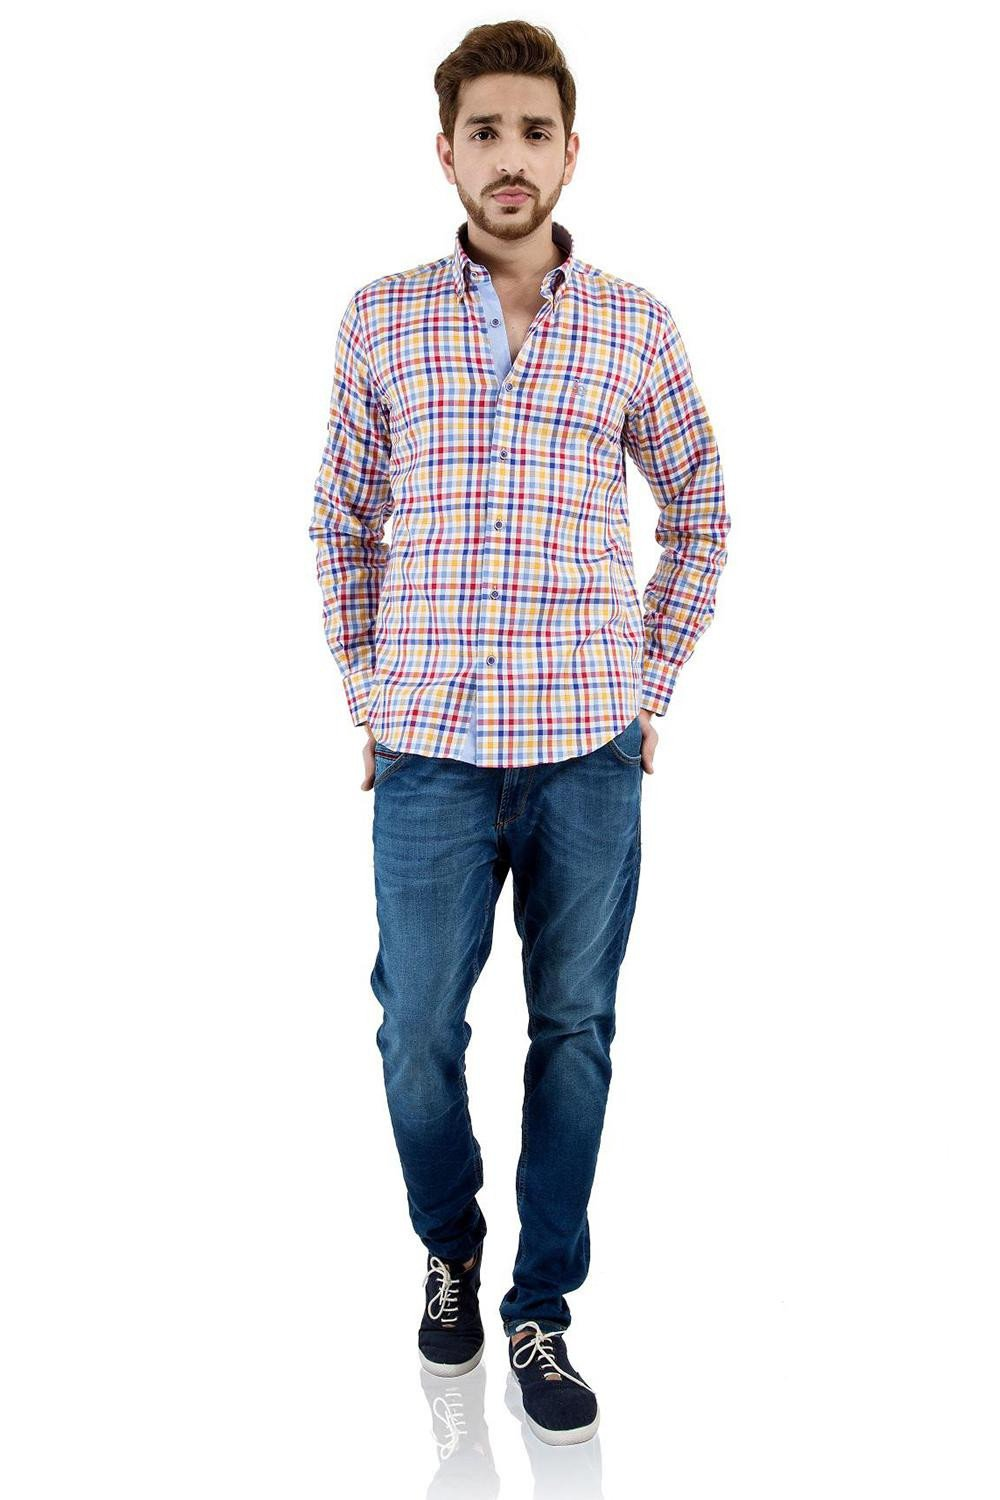 Colored Checkered Shirt, Multichecks